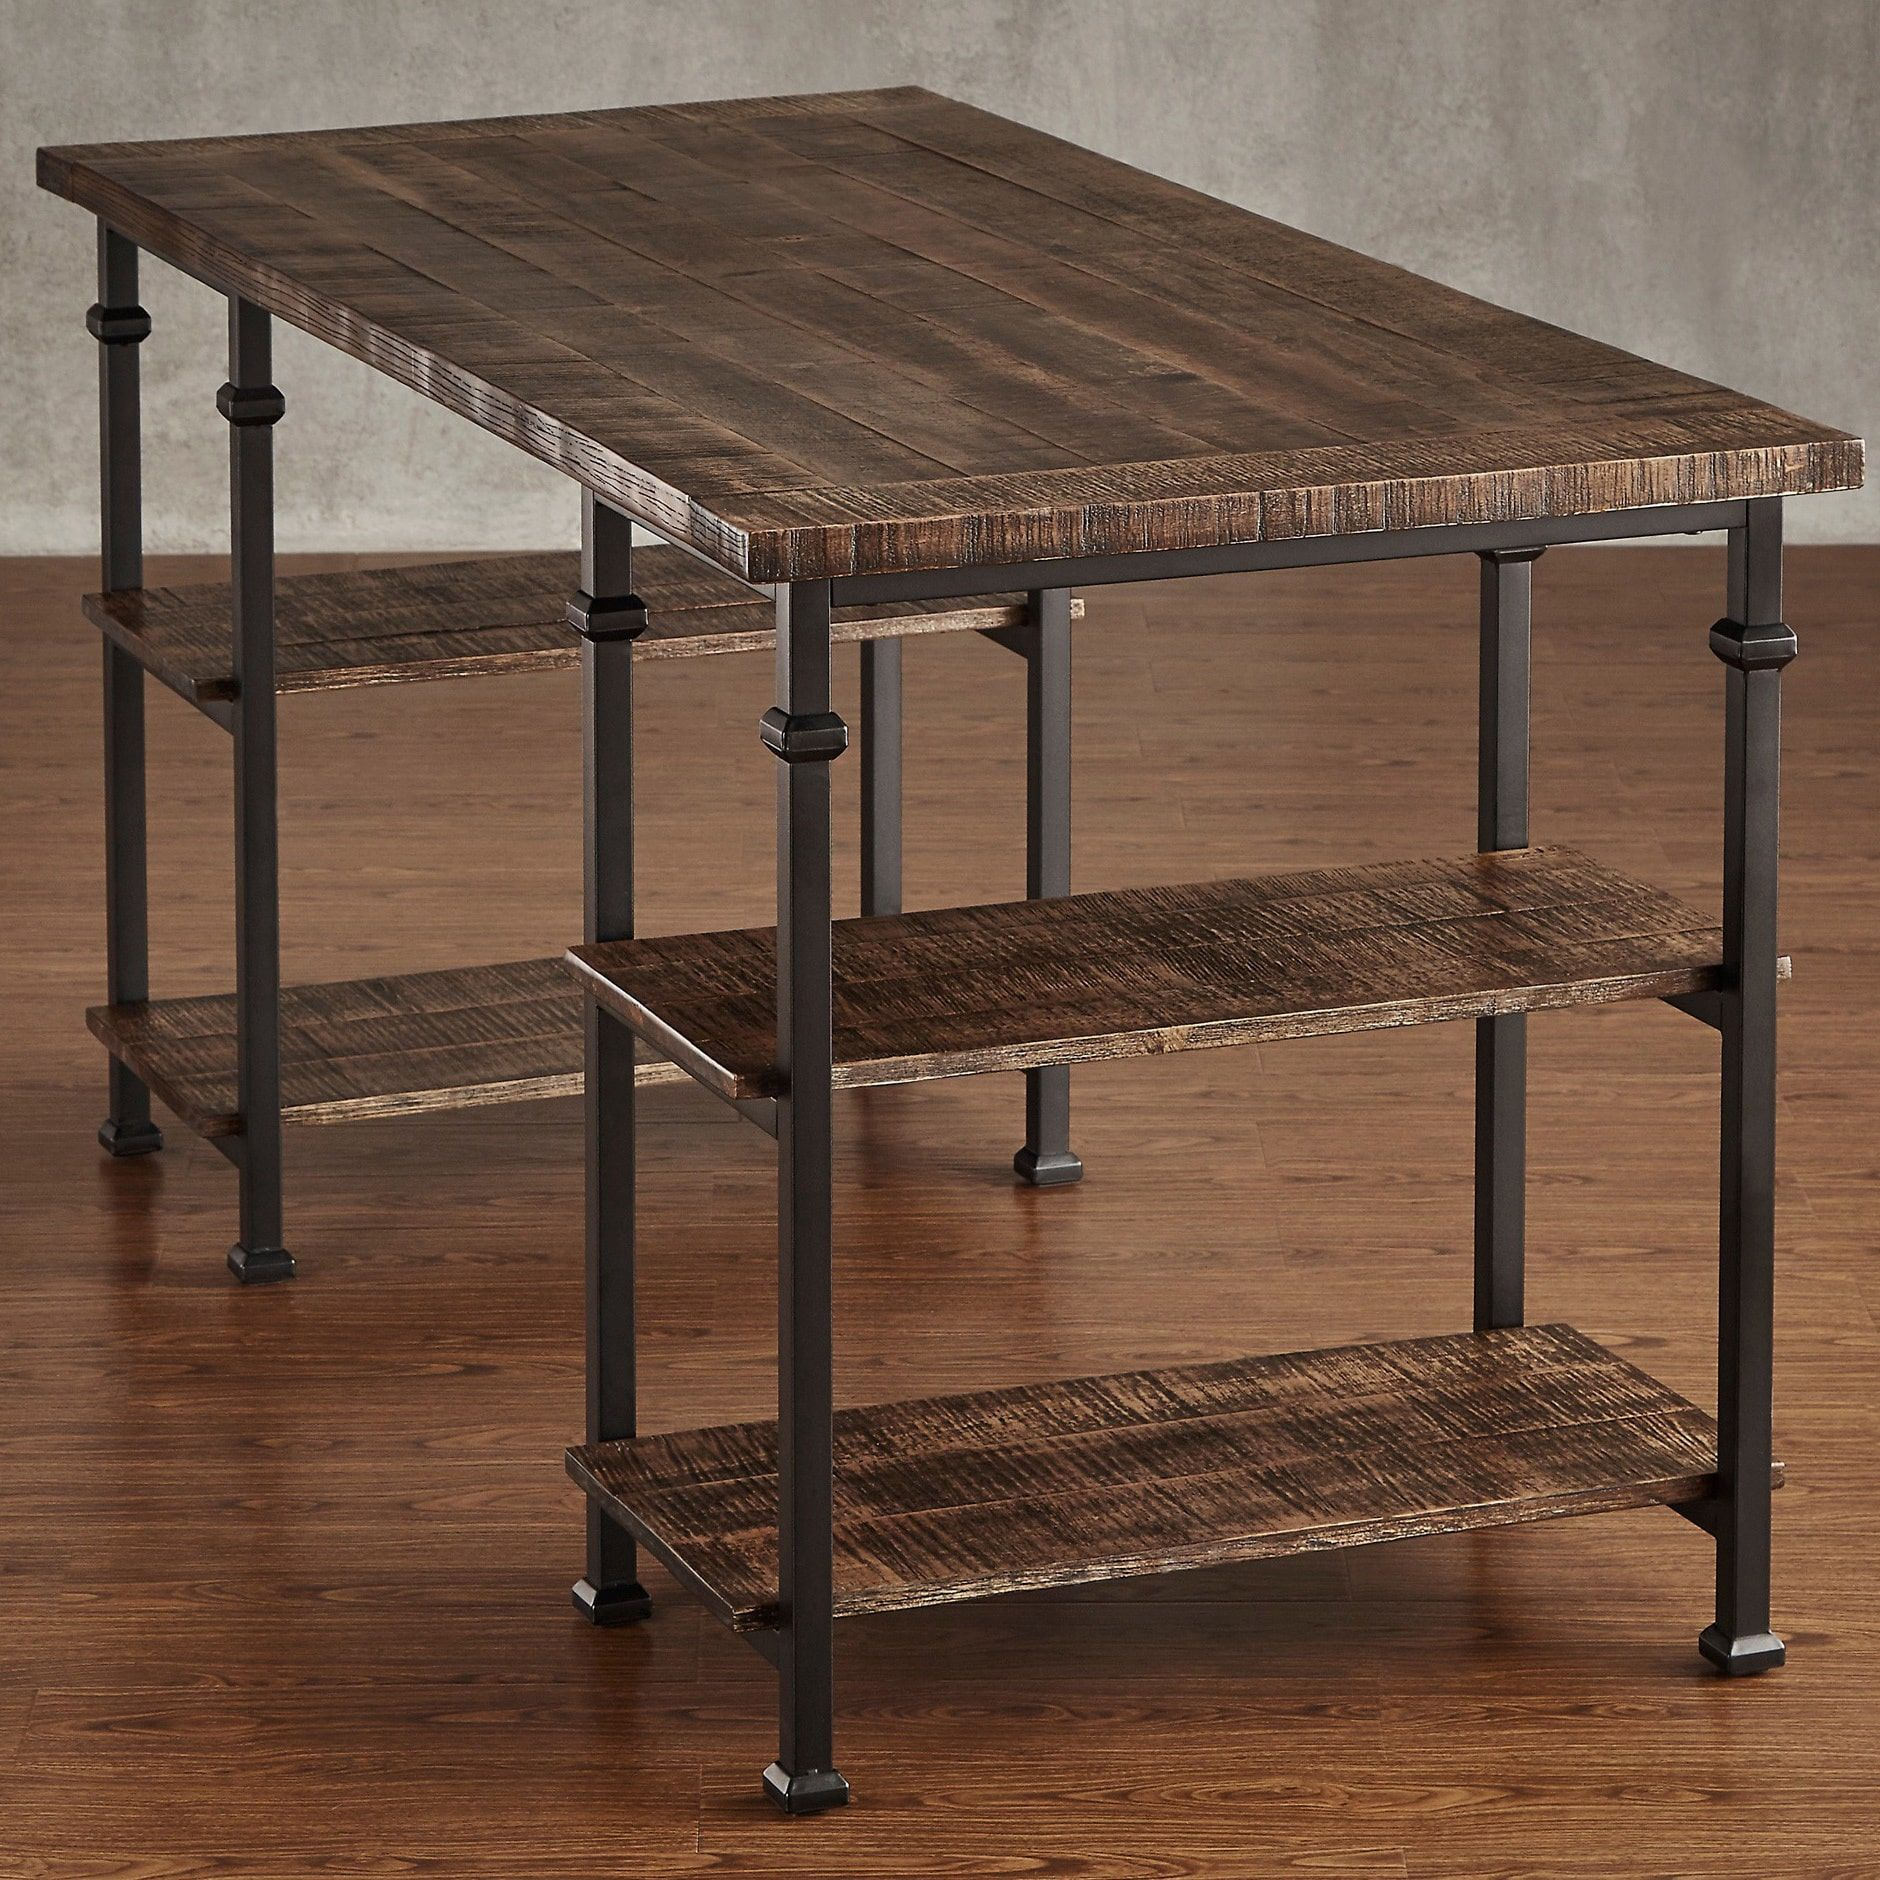 Myra Vintage Industrial Modern Rustic Storage Desk by iNSPIRE Q Classic